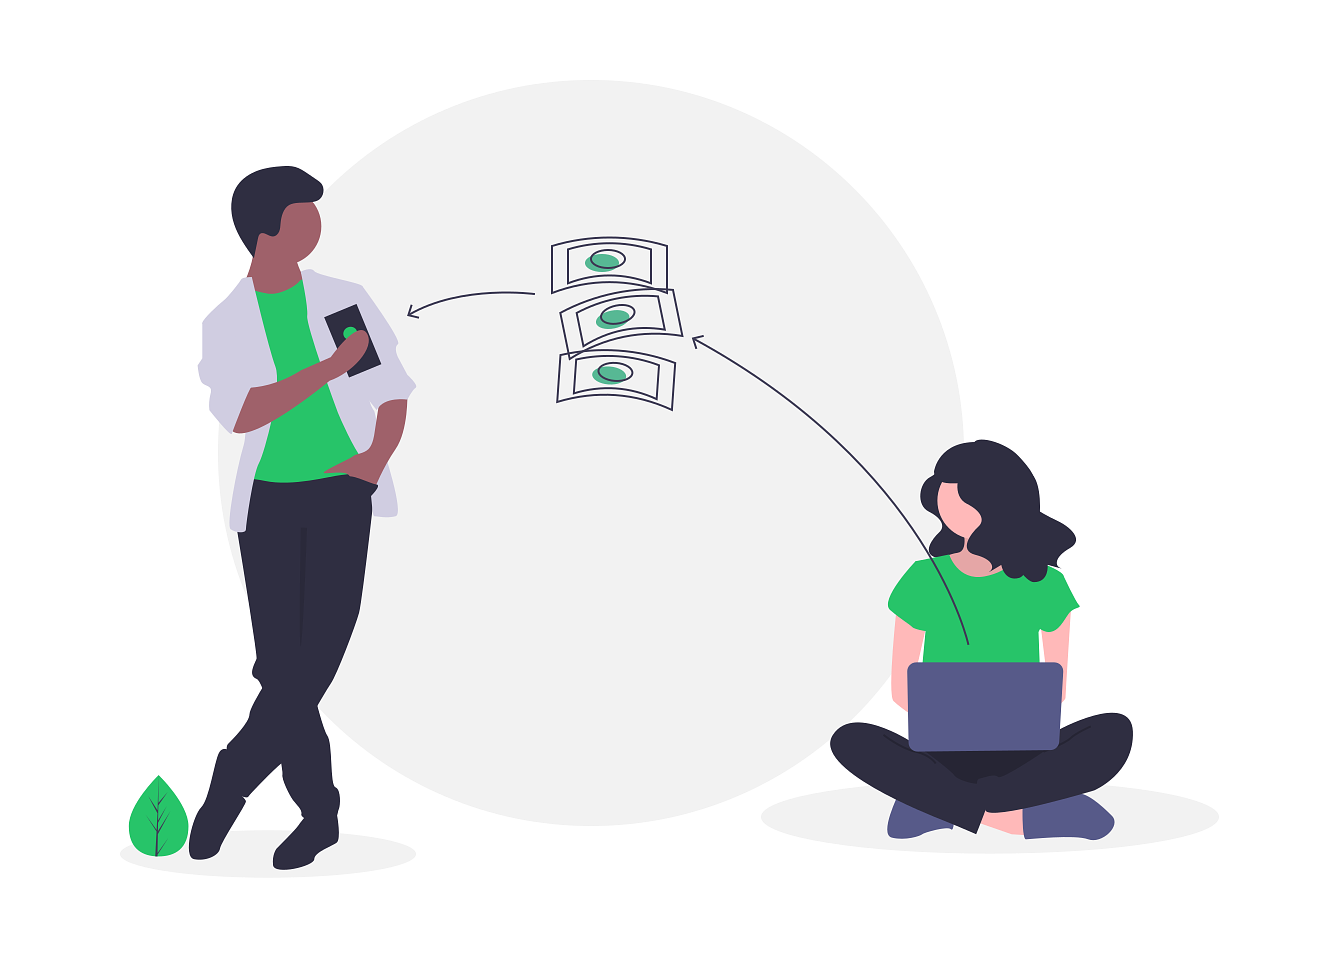 Chat Them Up: How To Convert Human Contact Into a Purchase